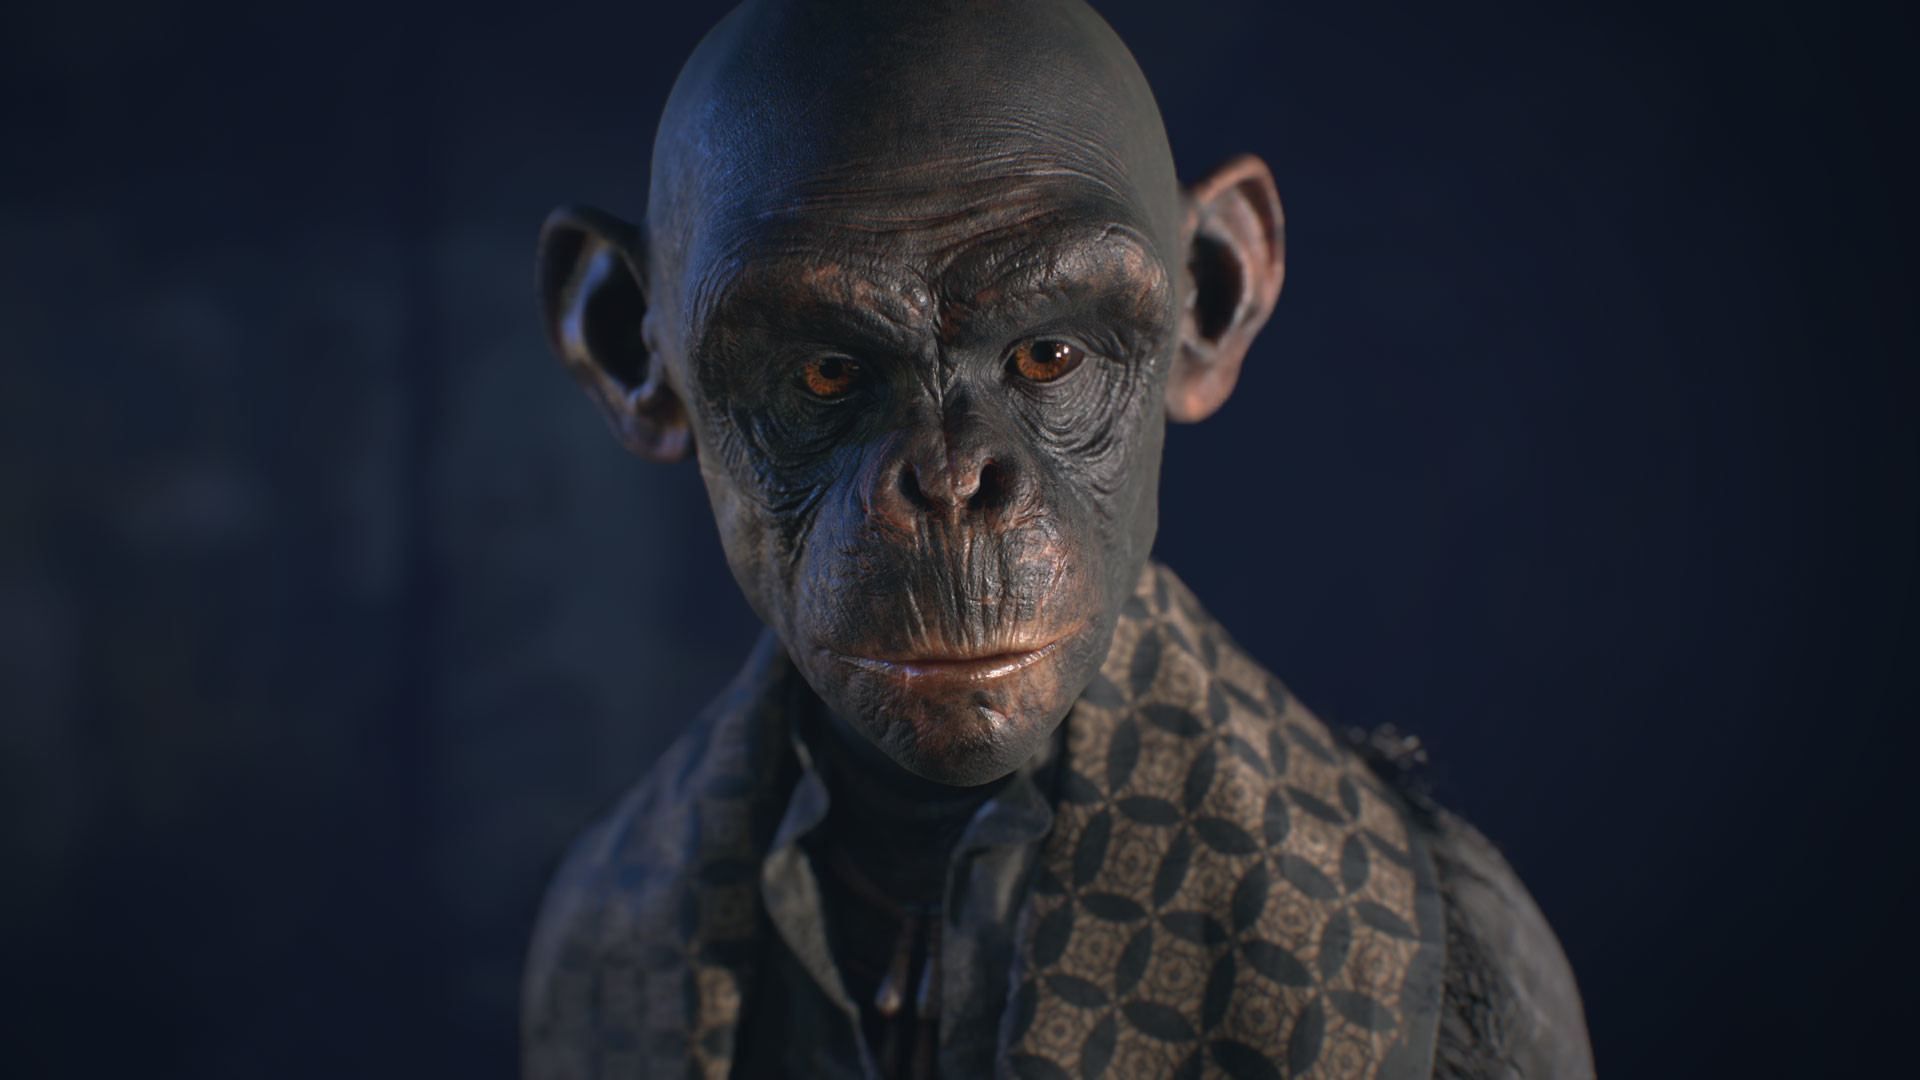 Pablo munoz gomez humanzee alternative render05